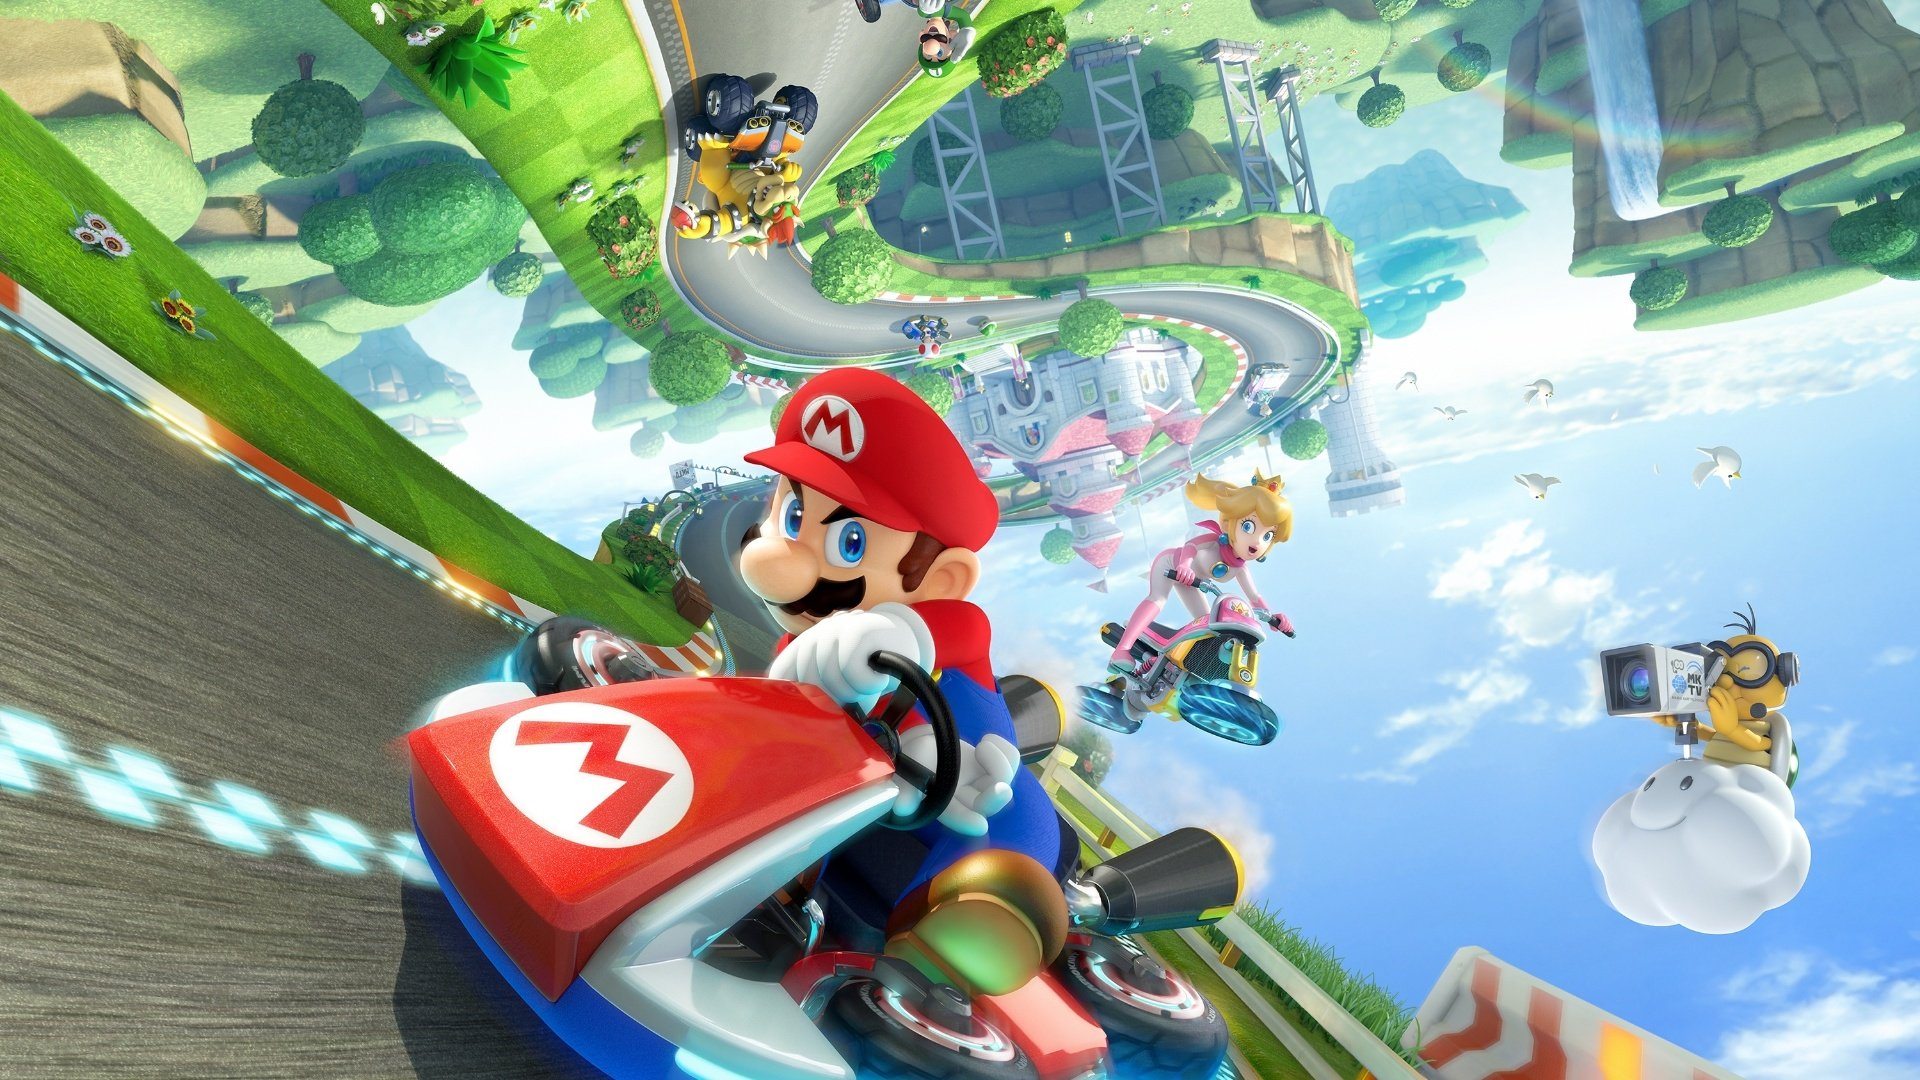 """Mario Kart 8"" - Fuel Up and Enjoy the Ride"